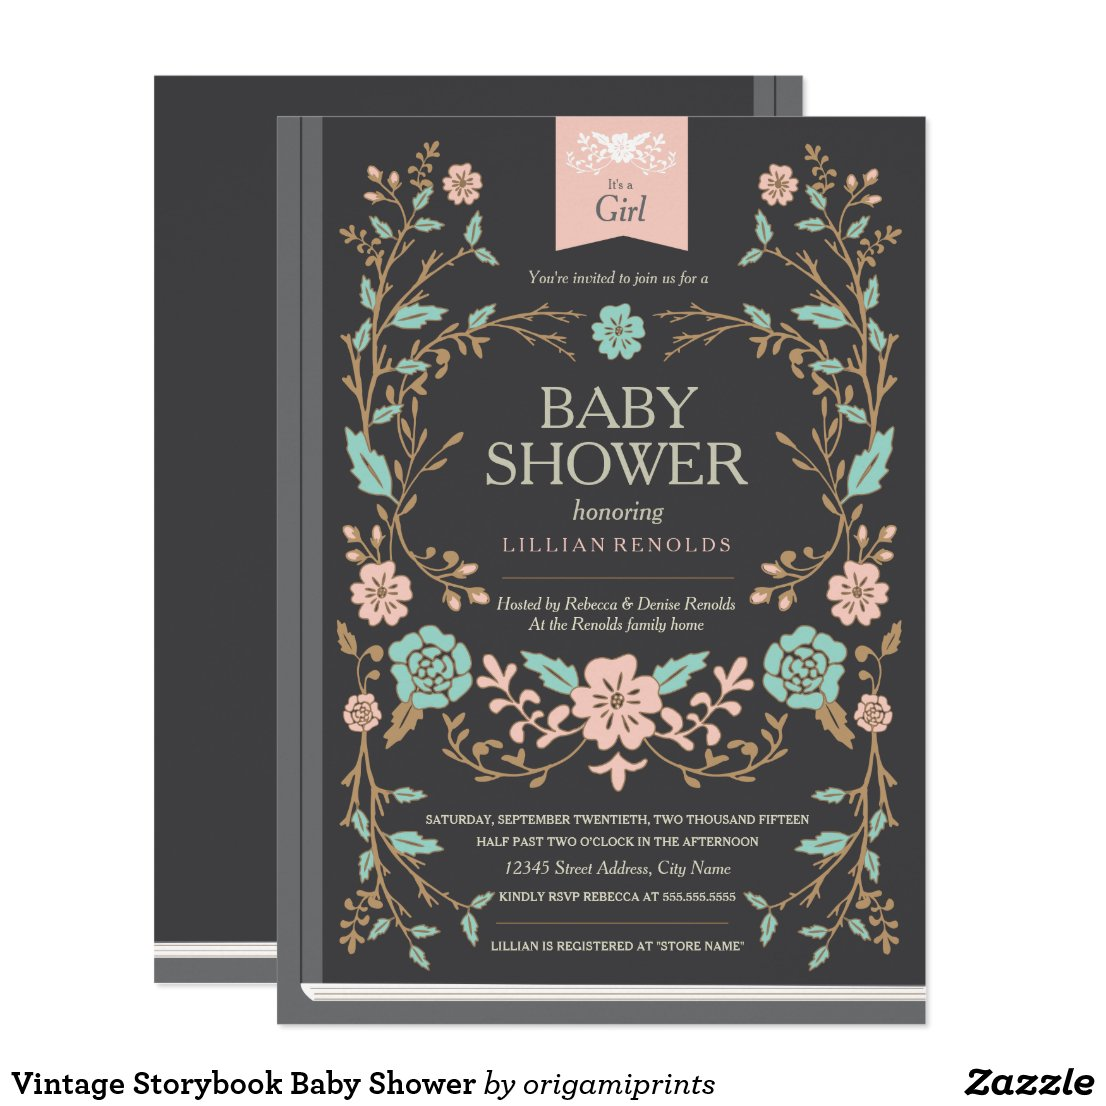 Vintage Storybook Baby Shower Card